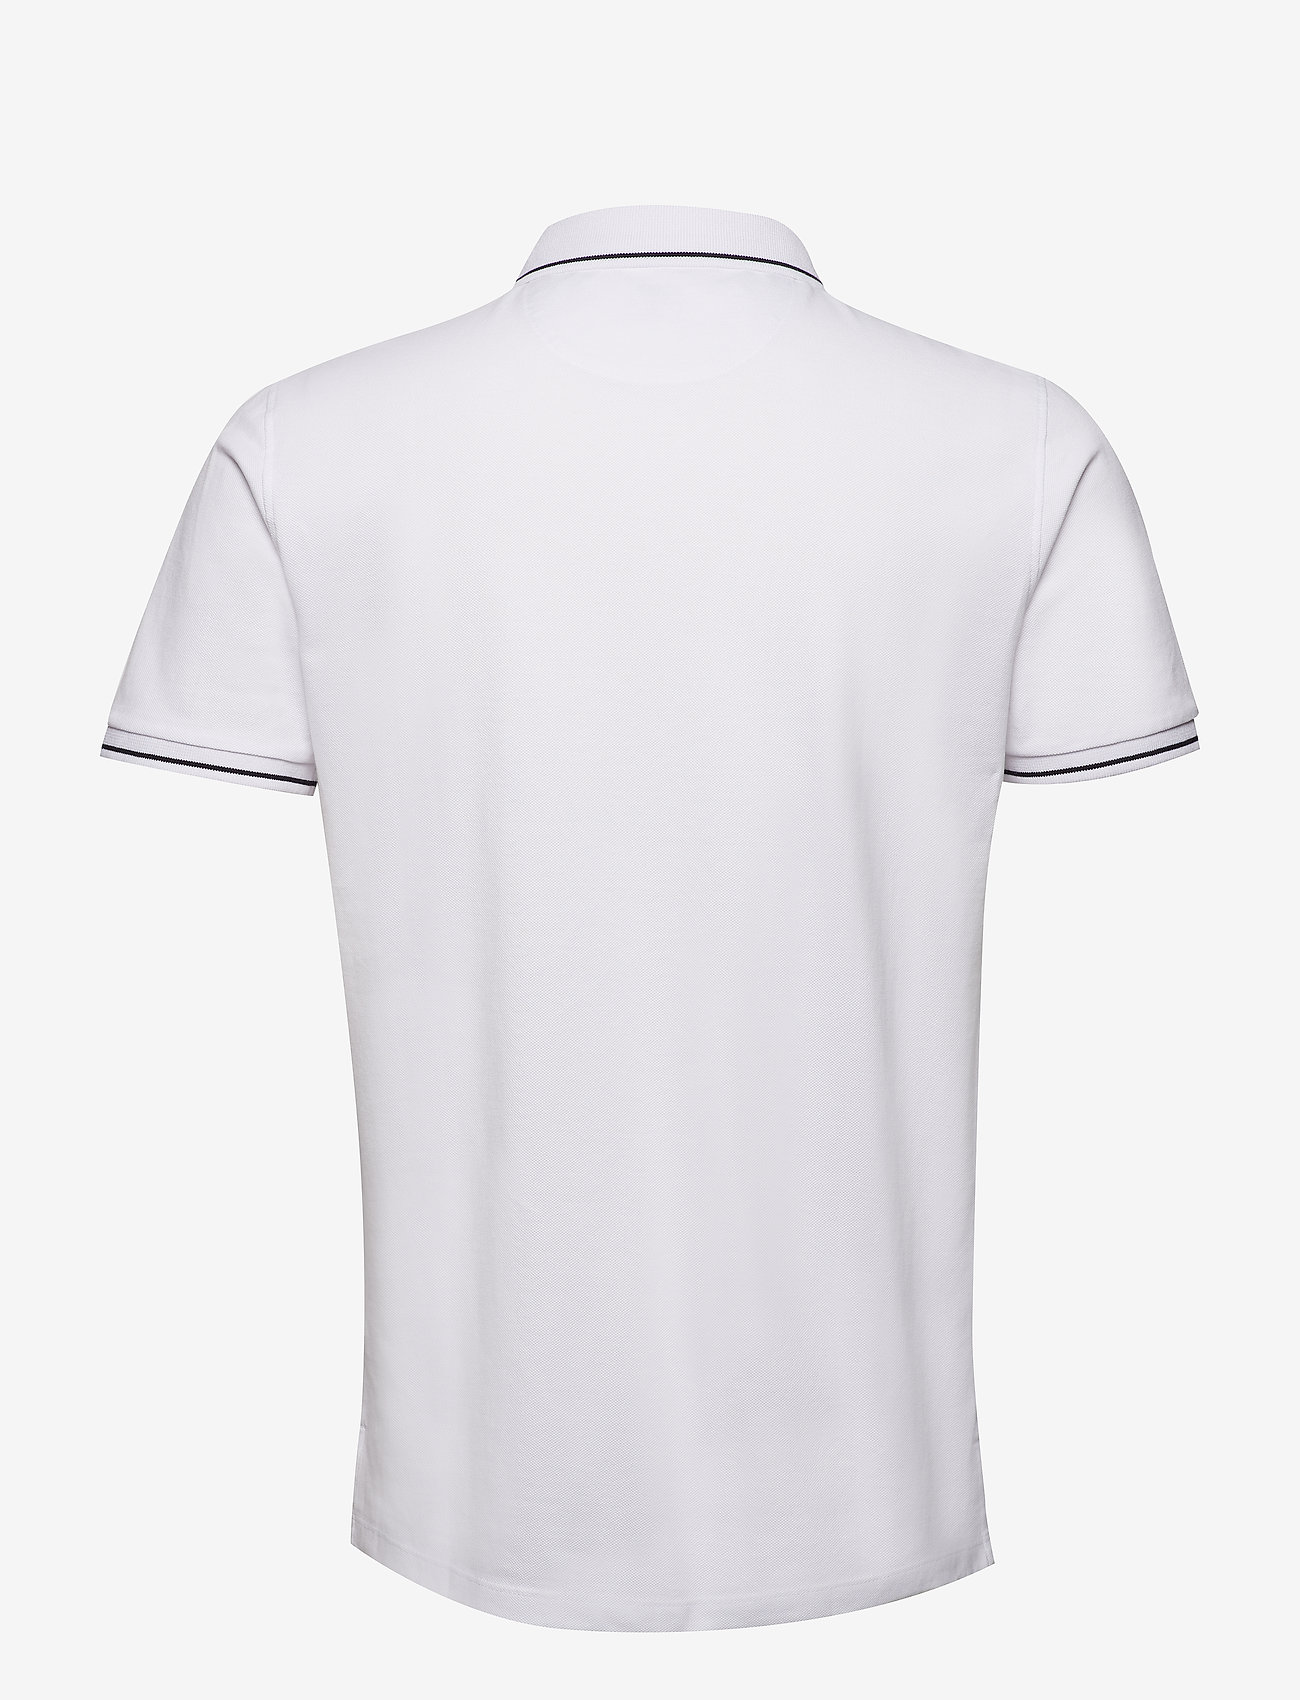 Lee Jeans - PIQUE POLO - short-sleeved polos - bright white